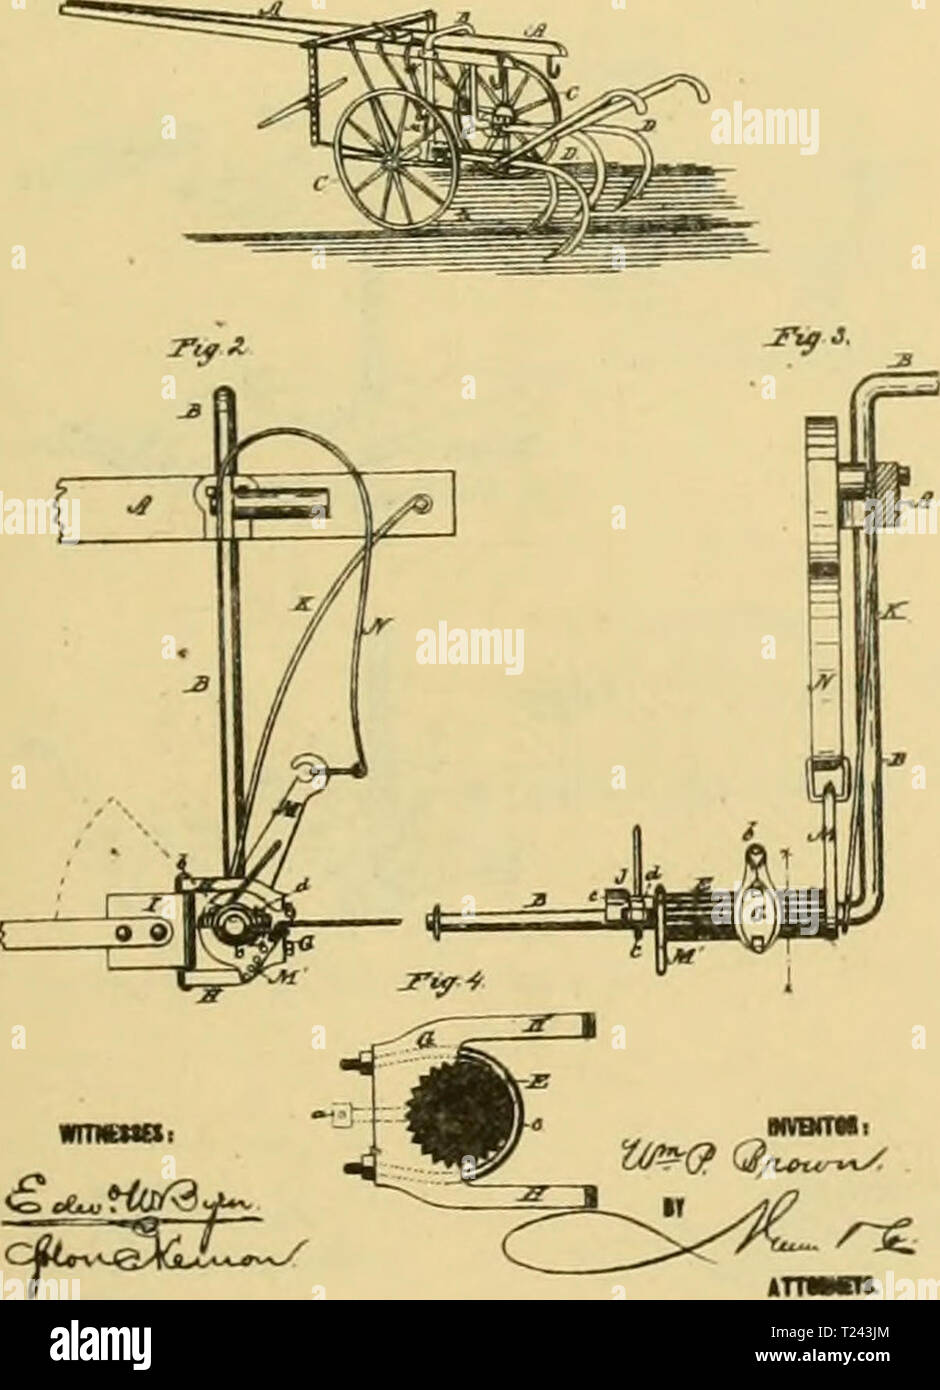 Archive image from page 720 of Digest of agricultural implements, patented Digest of agricultural implements, patented in the United States from A.D. 1789 to July 1881 ..  digestofagricult02alle Year: 1886  a- Cti-u JJitt W. p. BROWN. COUPLISQS FOR CULTIVATORS. »,. 190,816. P.1....4 H.y 16. H'. Patented Oct. 9, 1877. - Stock Image